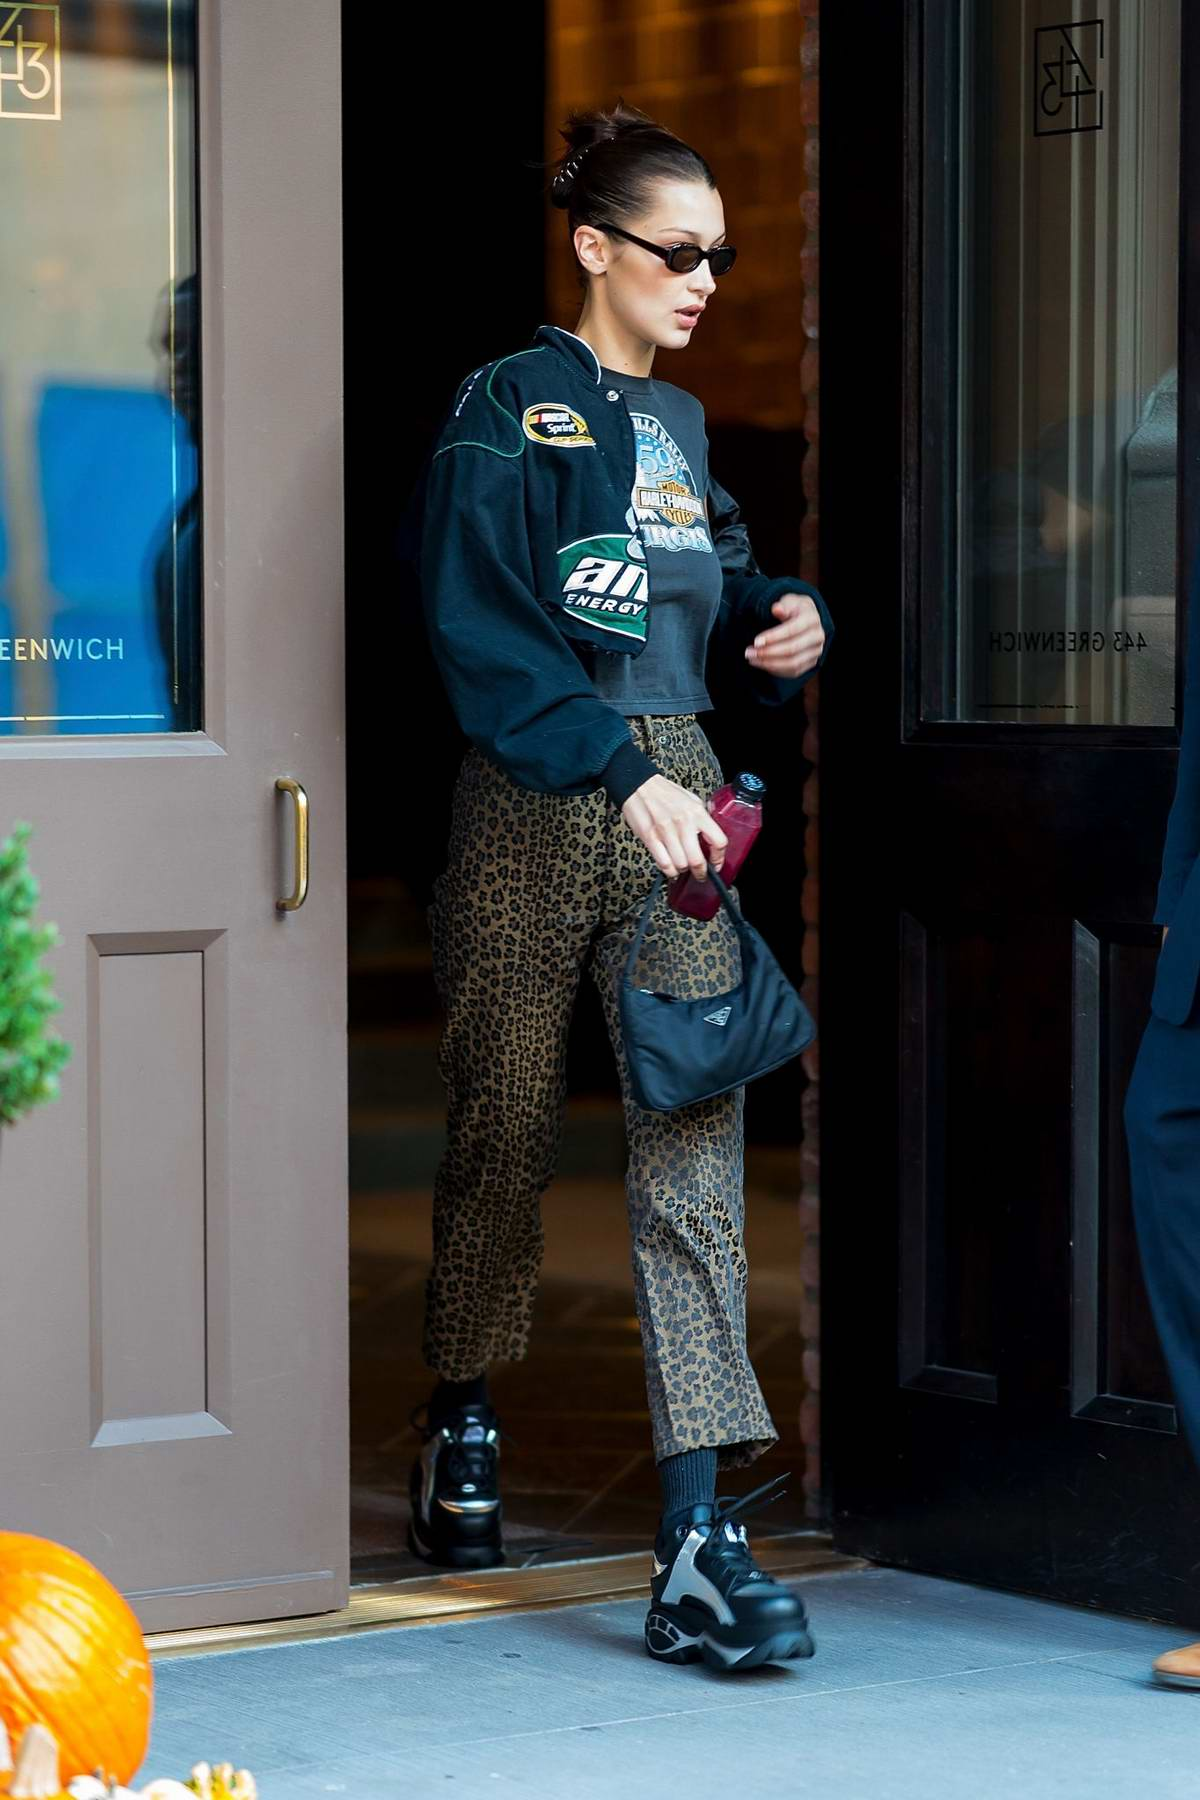 Bella Hadid rocks a cropped jacket and leopard print pants as she steps out in Tribeca in New York City